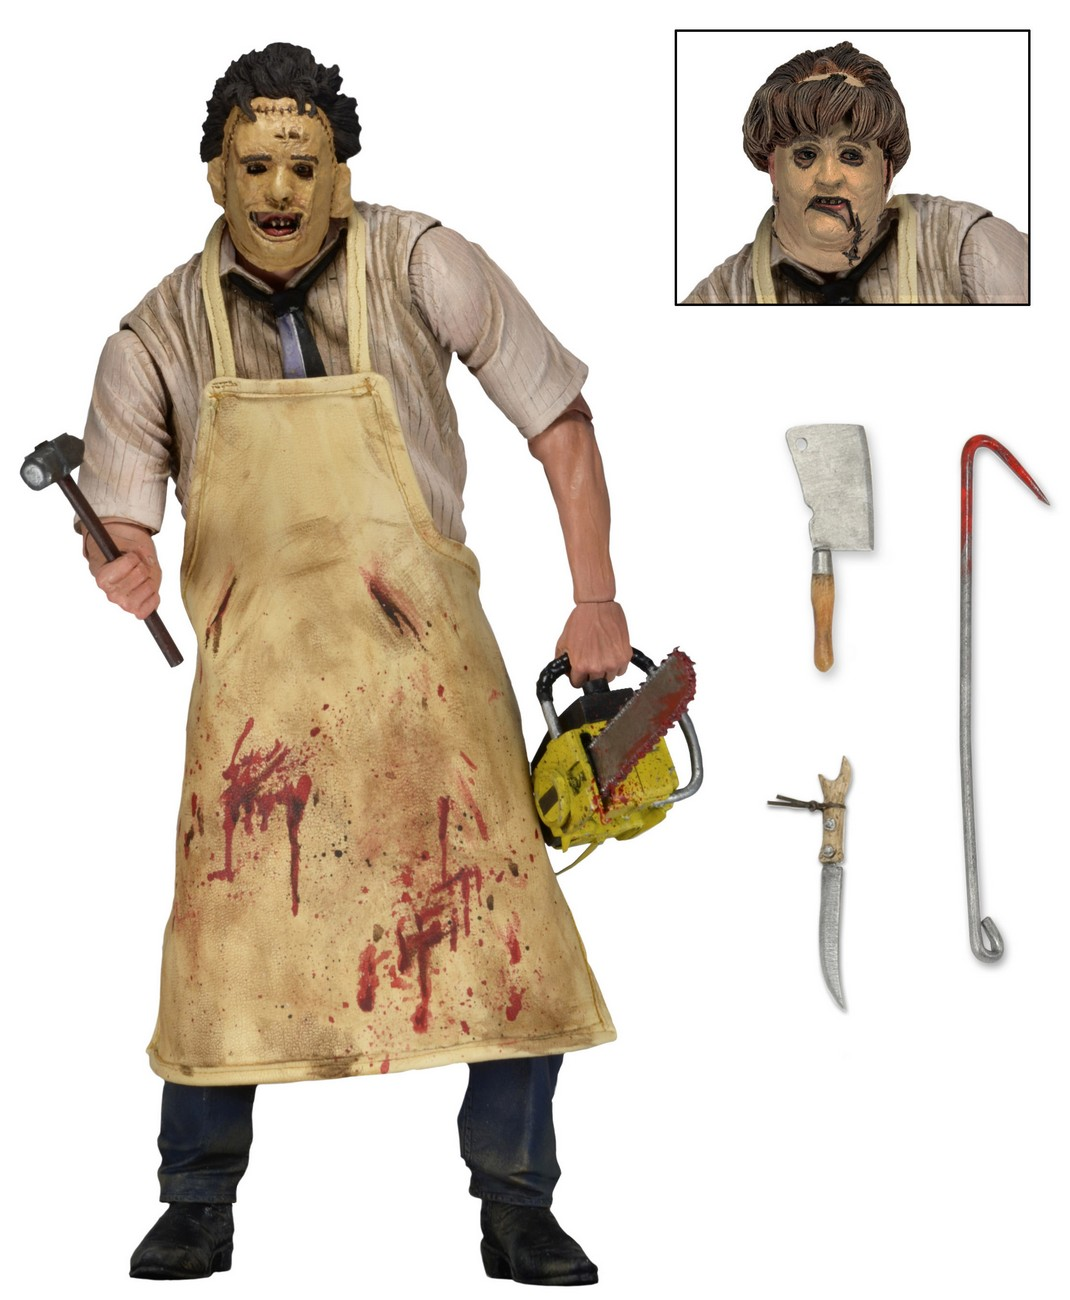 NECA Toys Texas Chainsaw Massacre Ultimate Leatherface 7″ Scale Figure Re-Issue